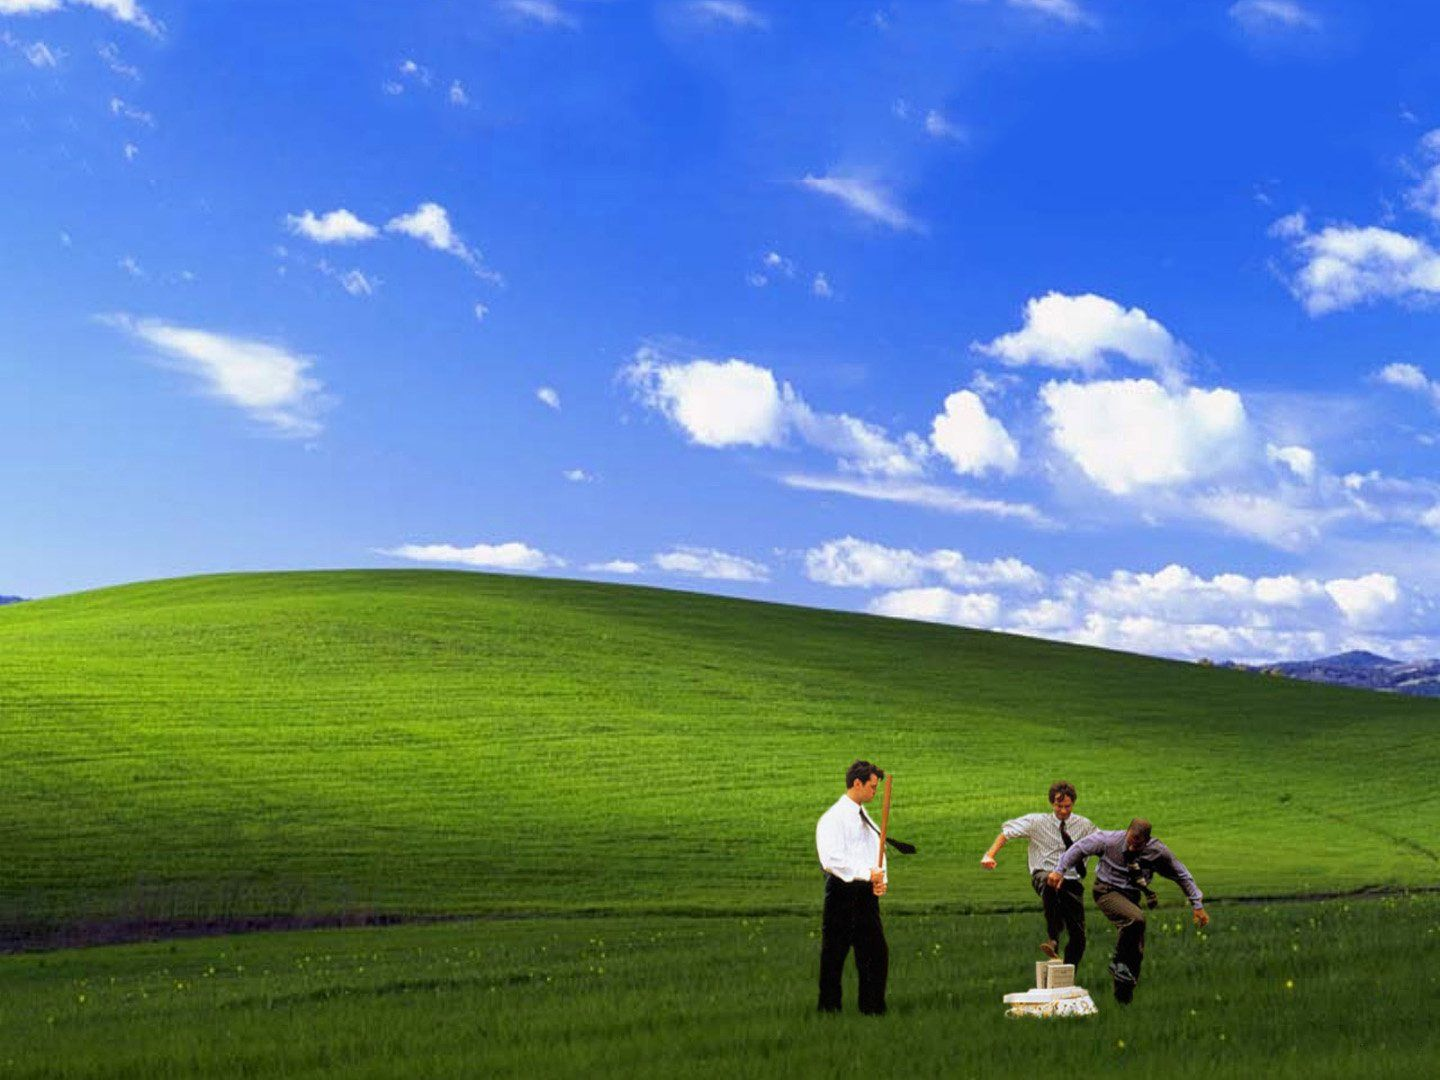 Good Use Of The Windows Xp Wallpaper Office Space Office Space Movie Gifs